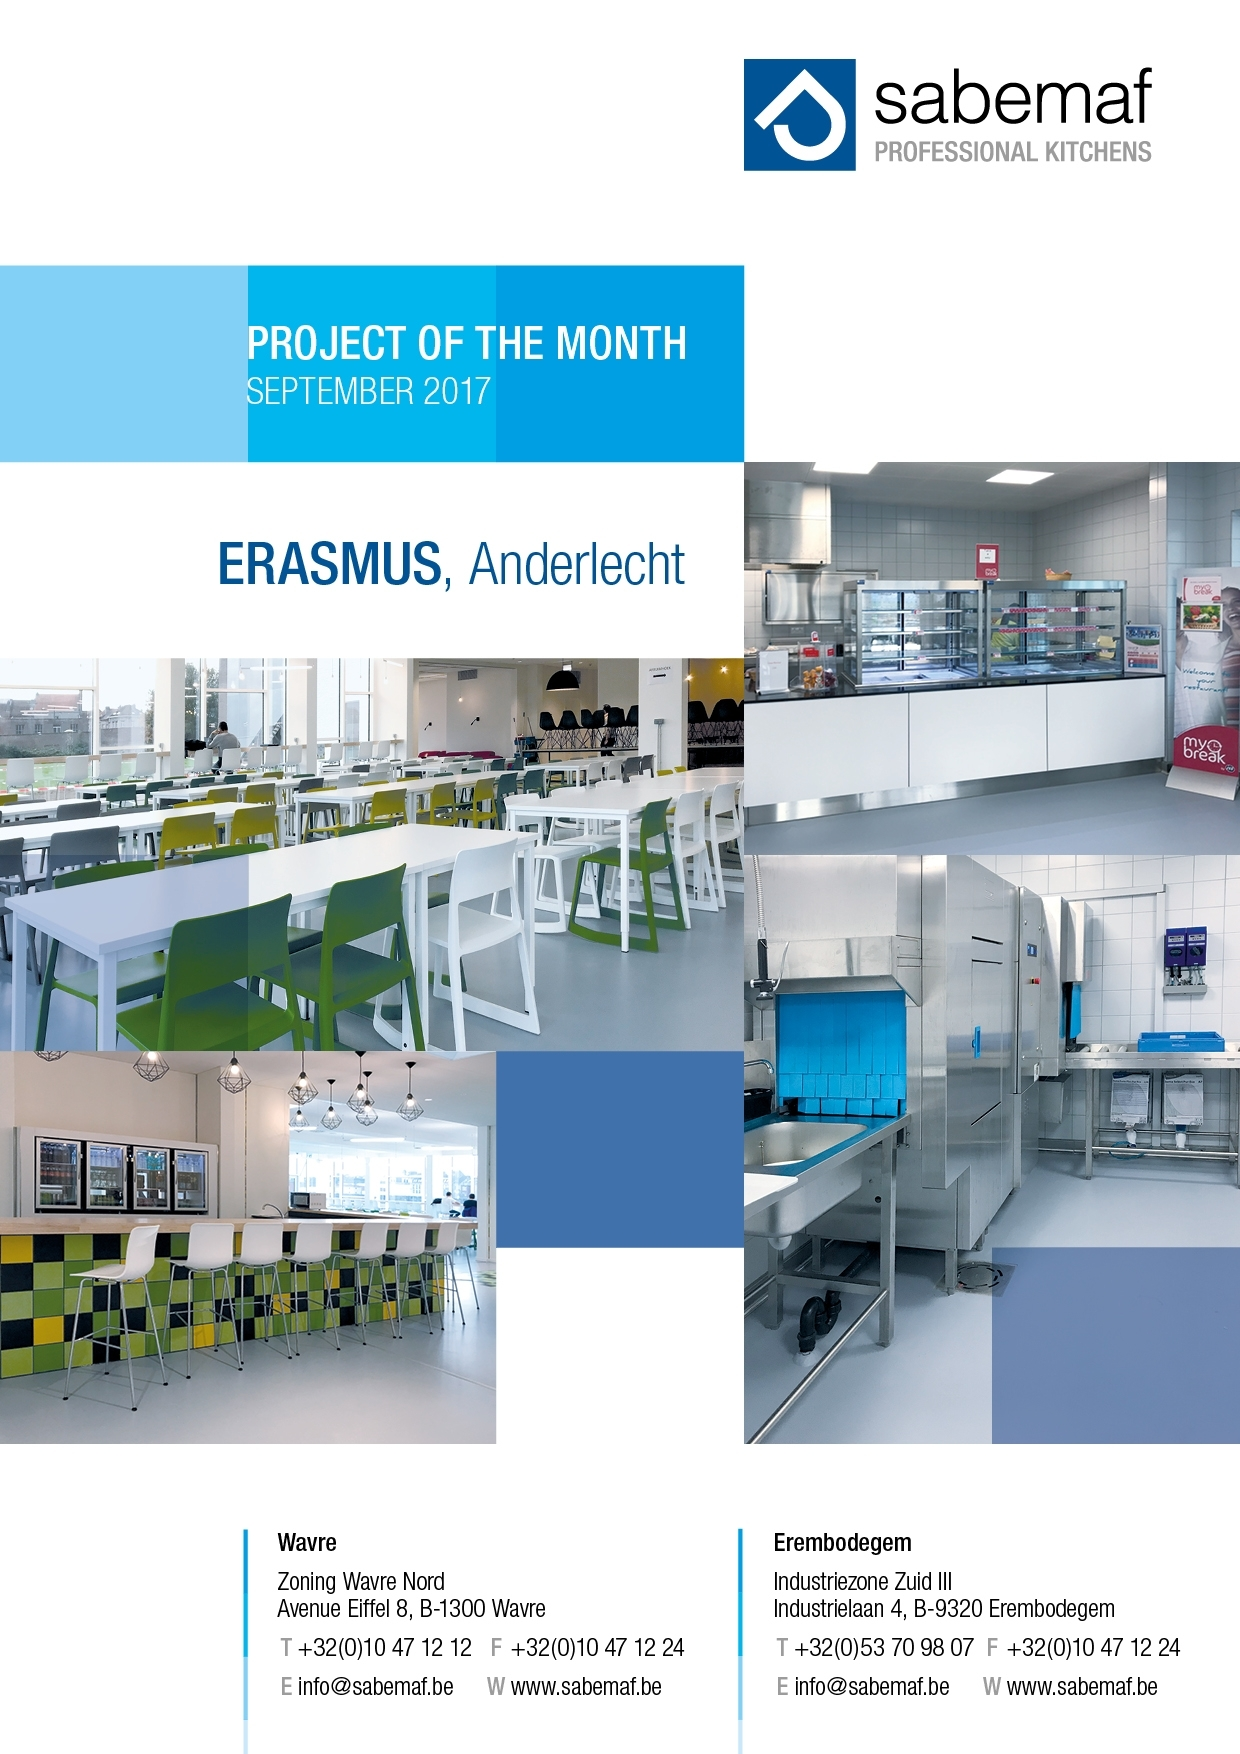 POM Project of the month September 2017 Erasmus Anderlecht